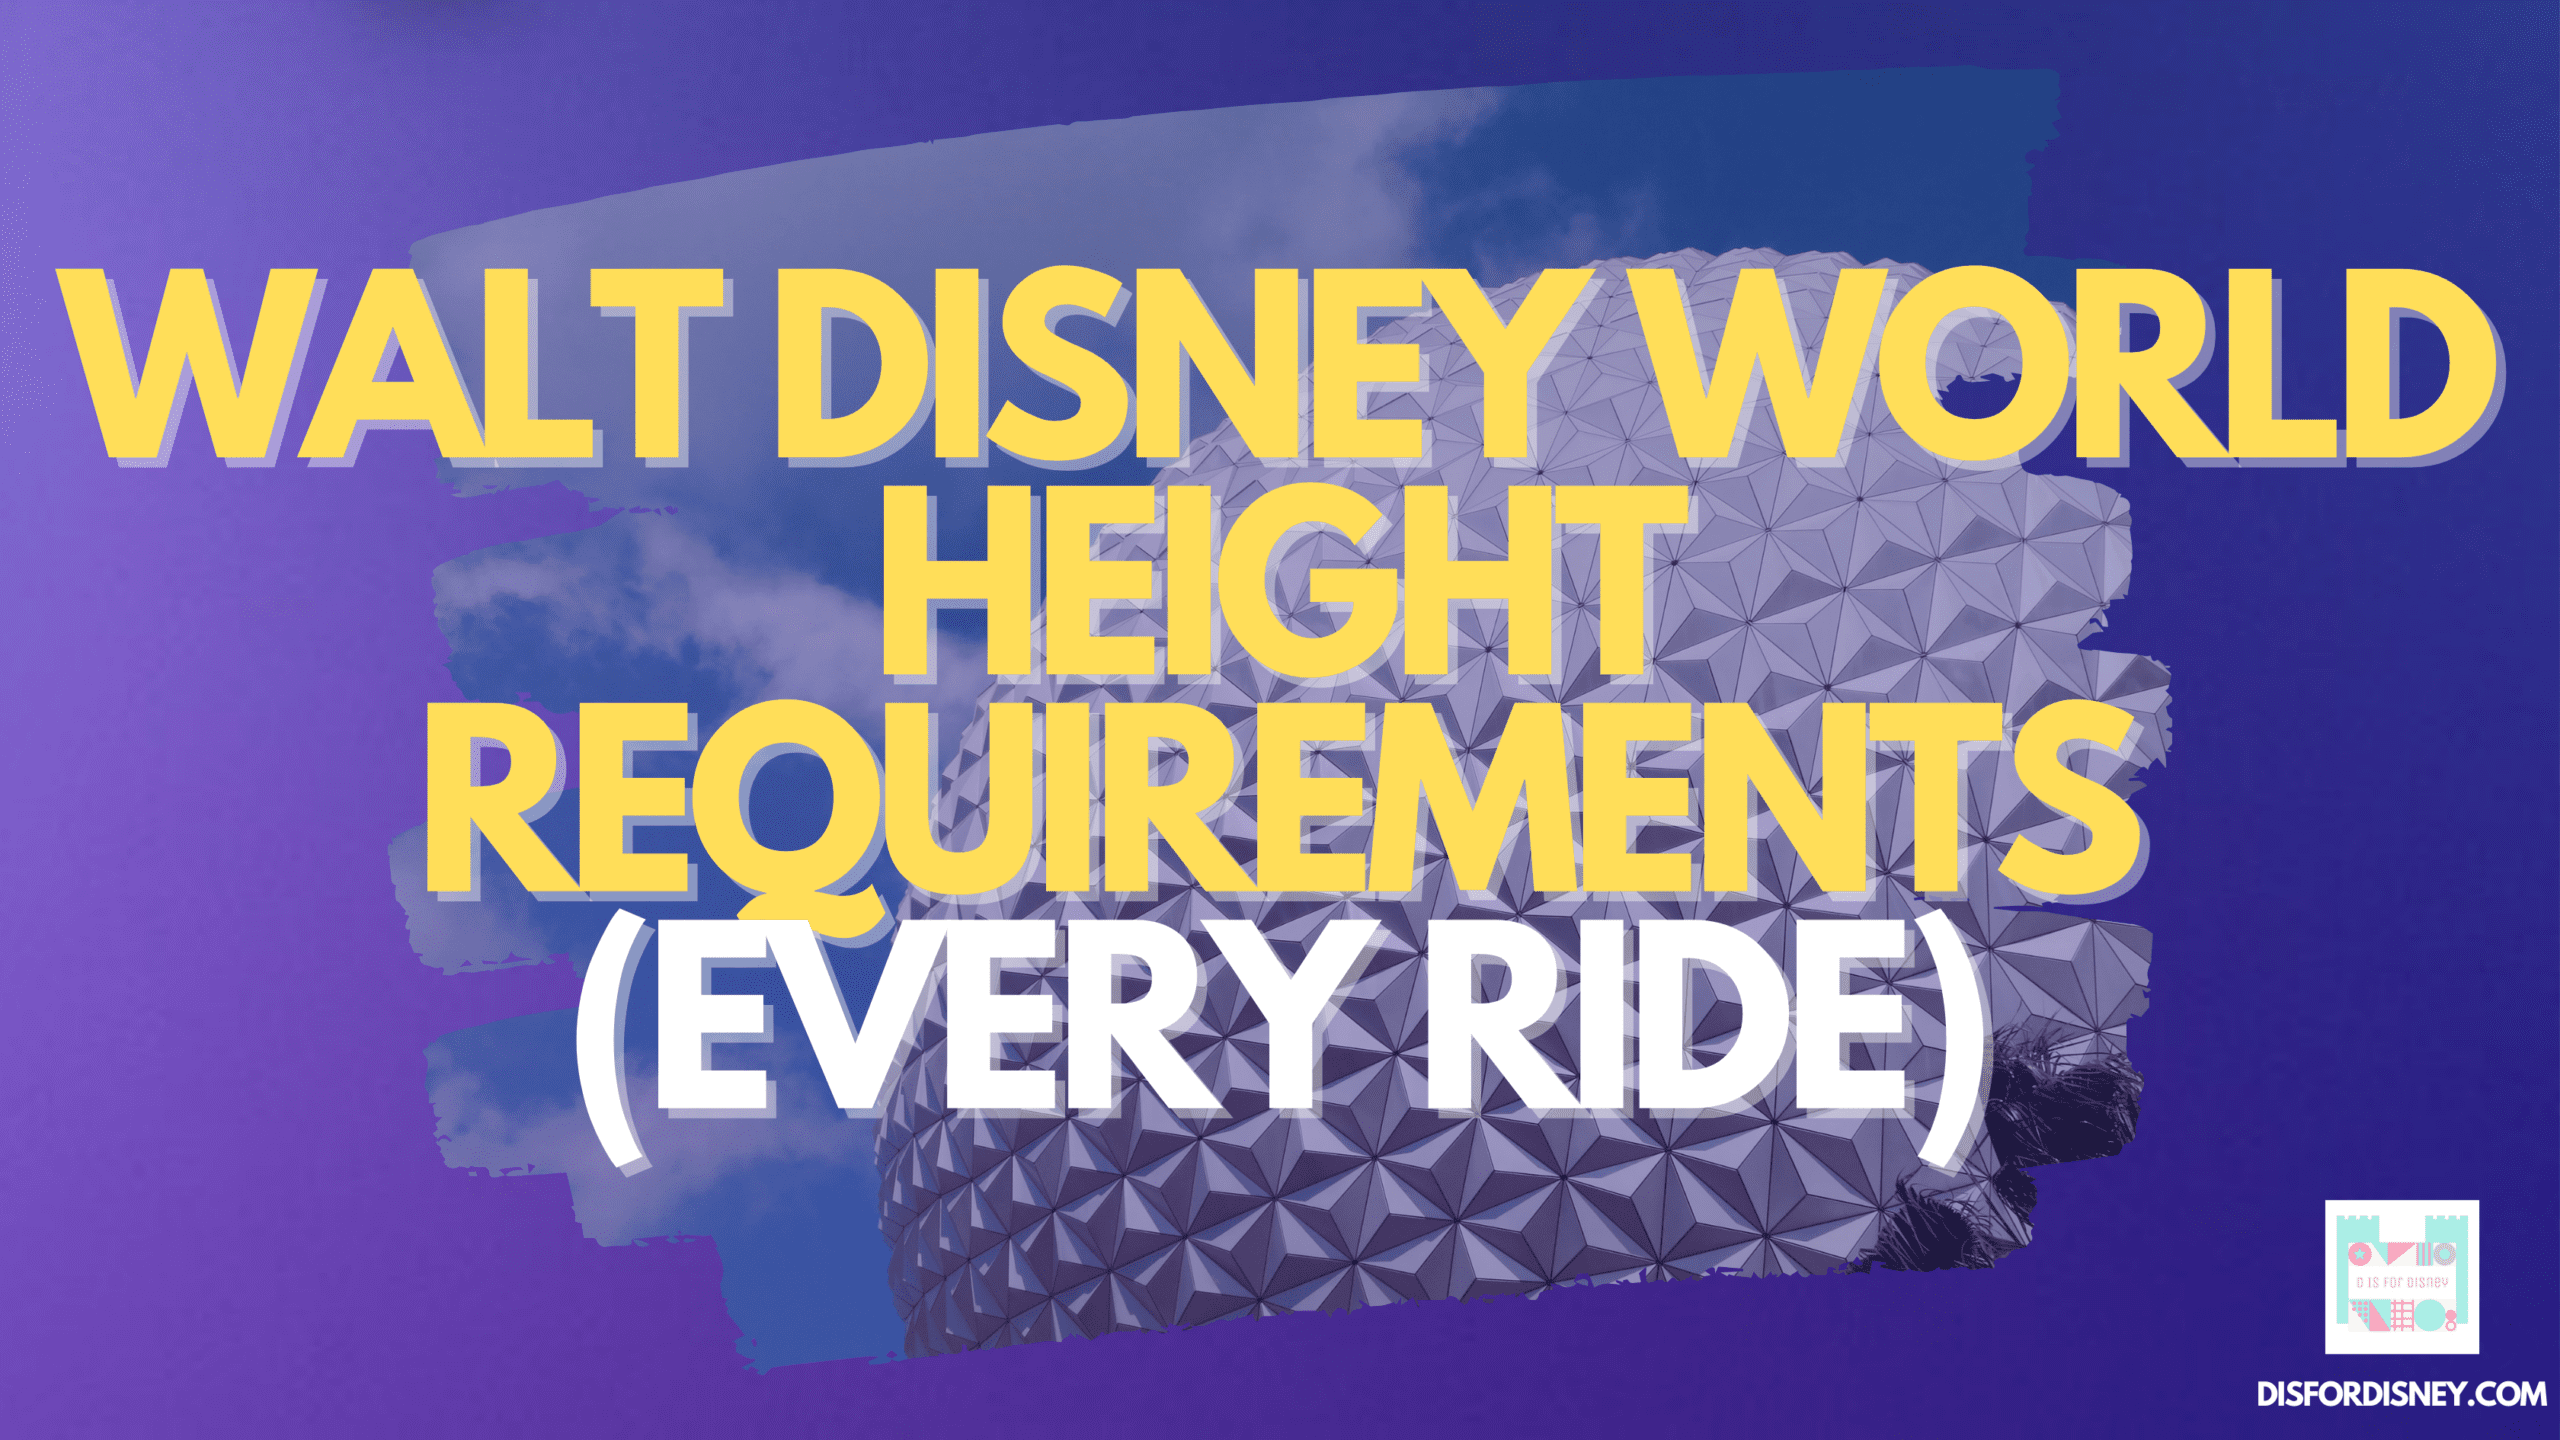 Walt Disney World Height Requirements for Every Ride